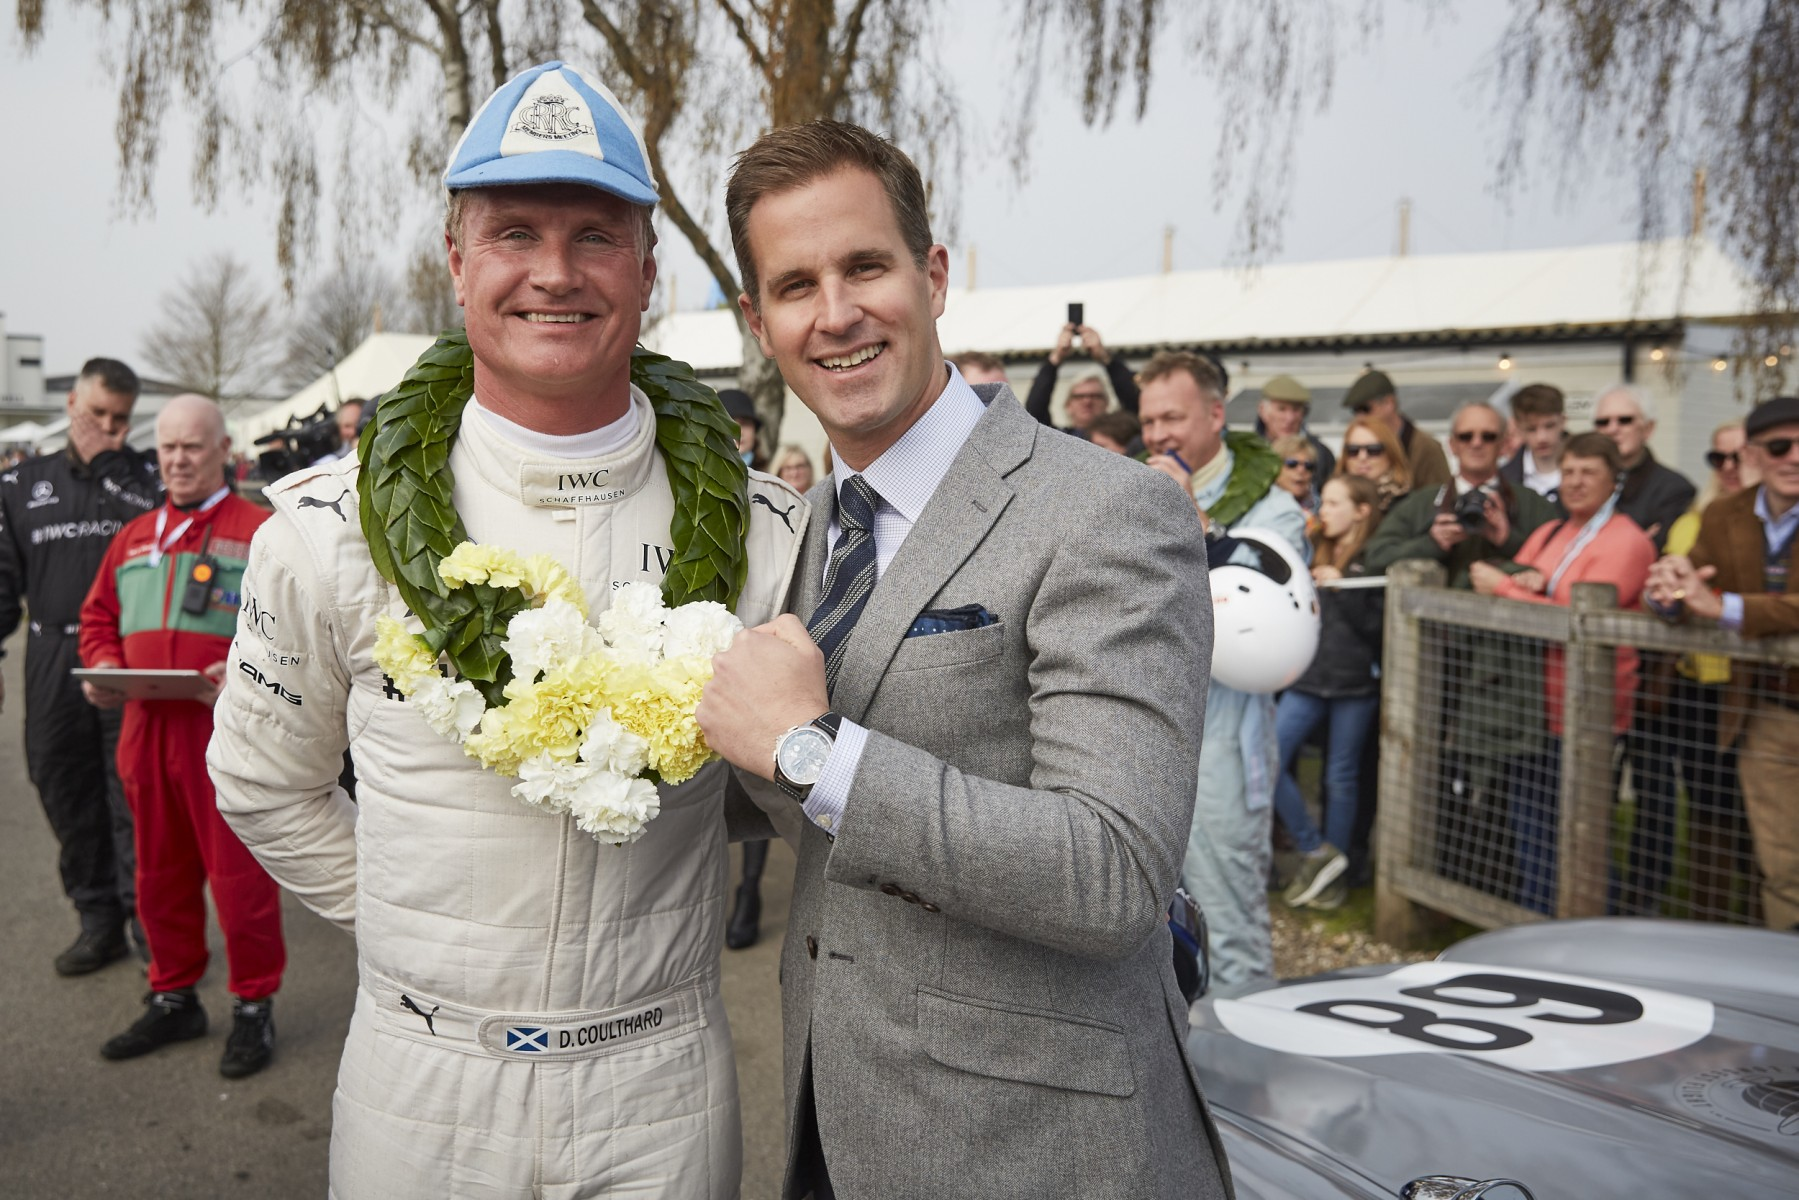 IWC_Goodwood MM_2019